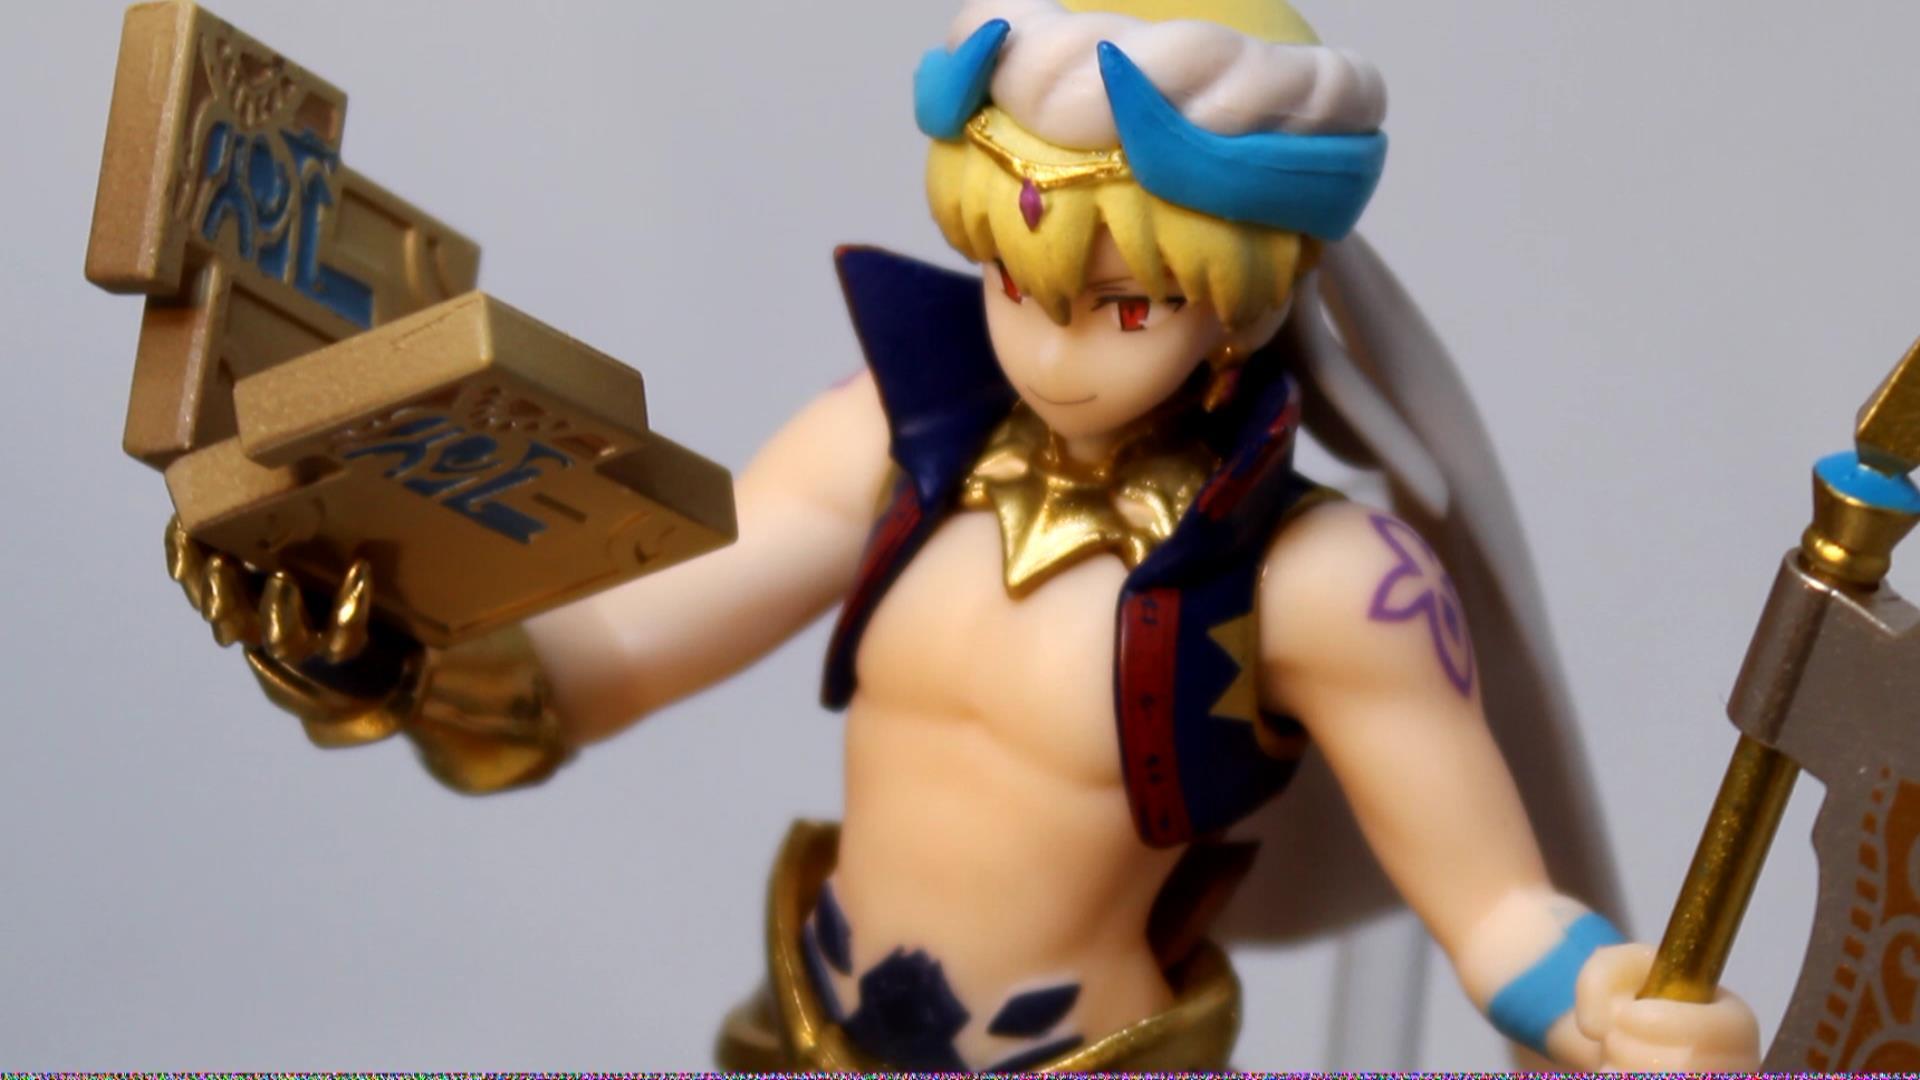 [Fate/Grand Order] Duel collection figure Vol.10 review(Unboxing ANIPLEX+) 絶対魔獣戦線バビロニアエレシュキガル イシュタル_e0251890_11295701.jpg